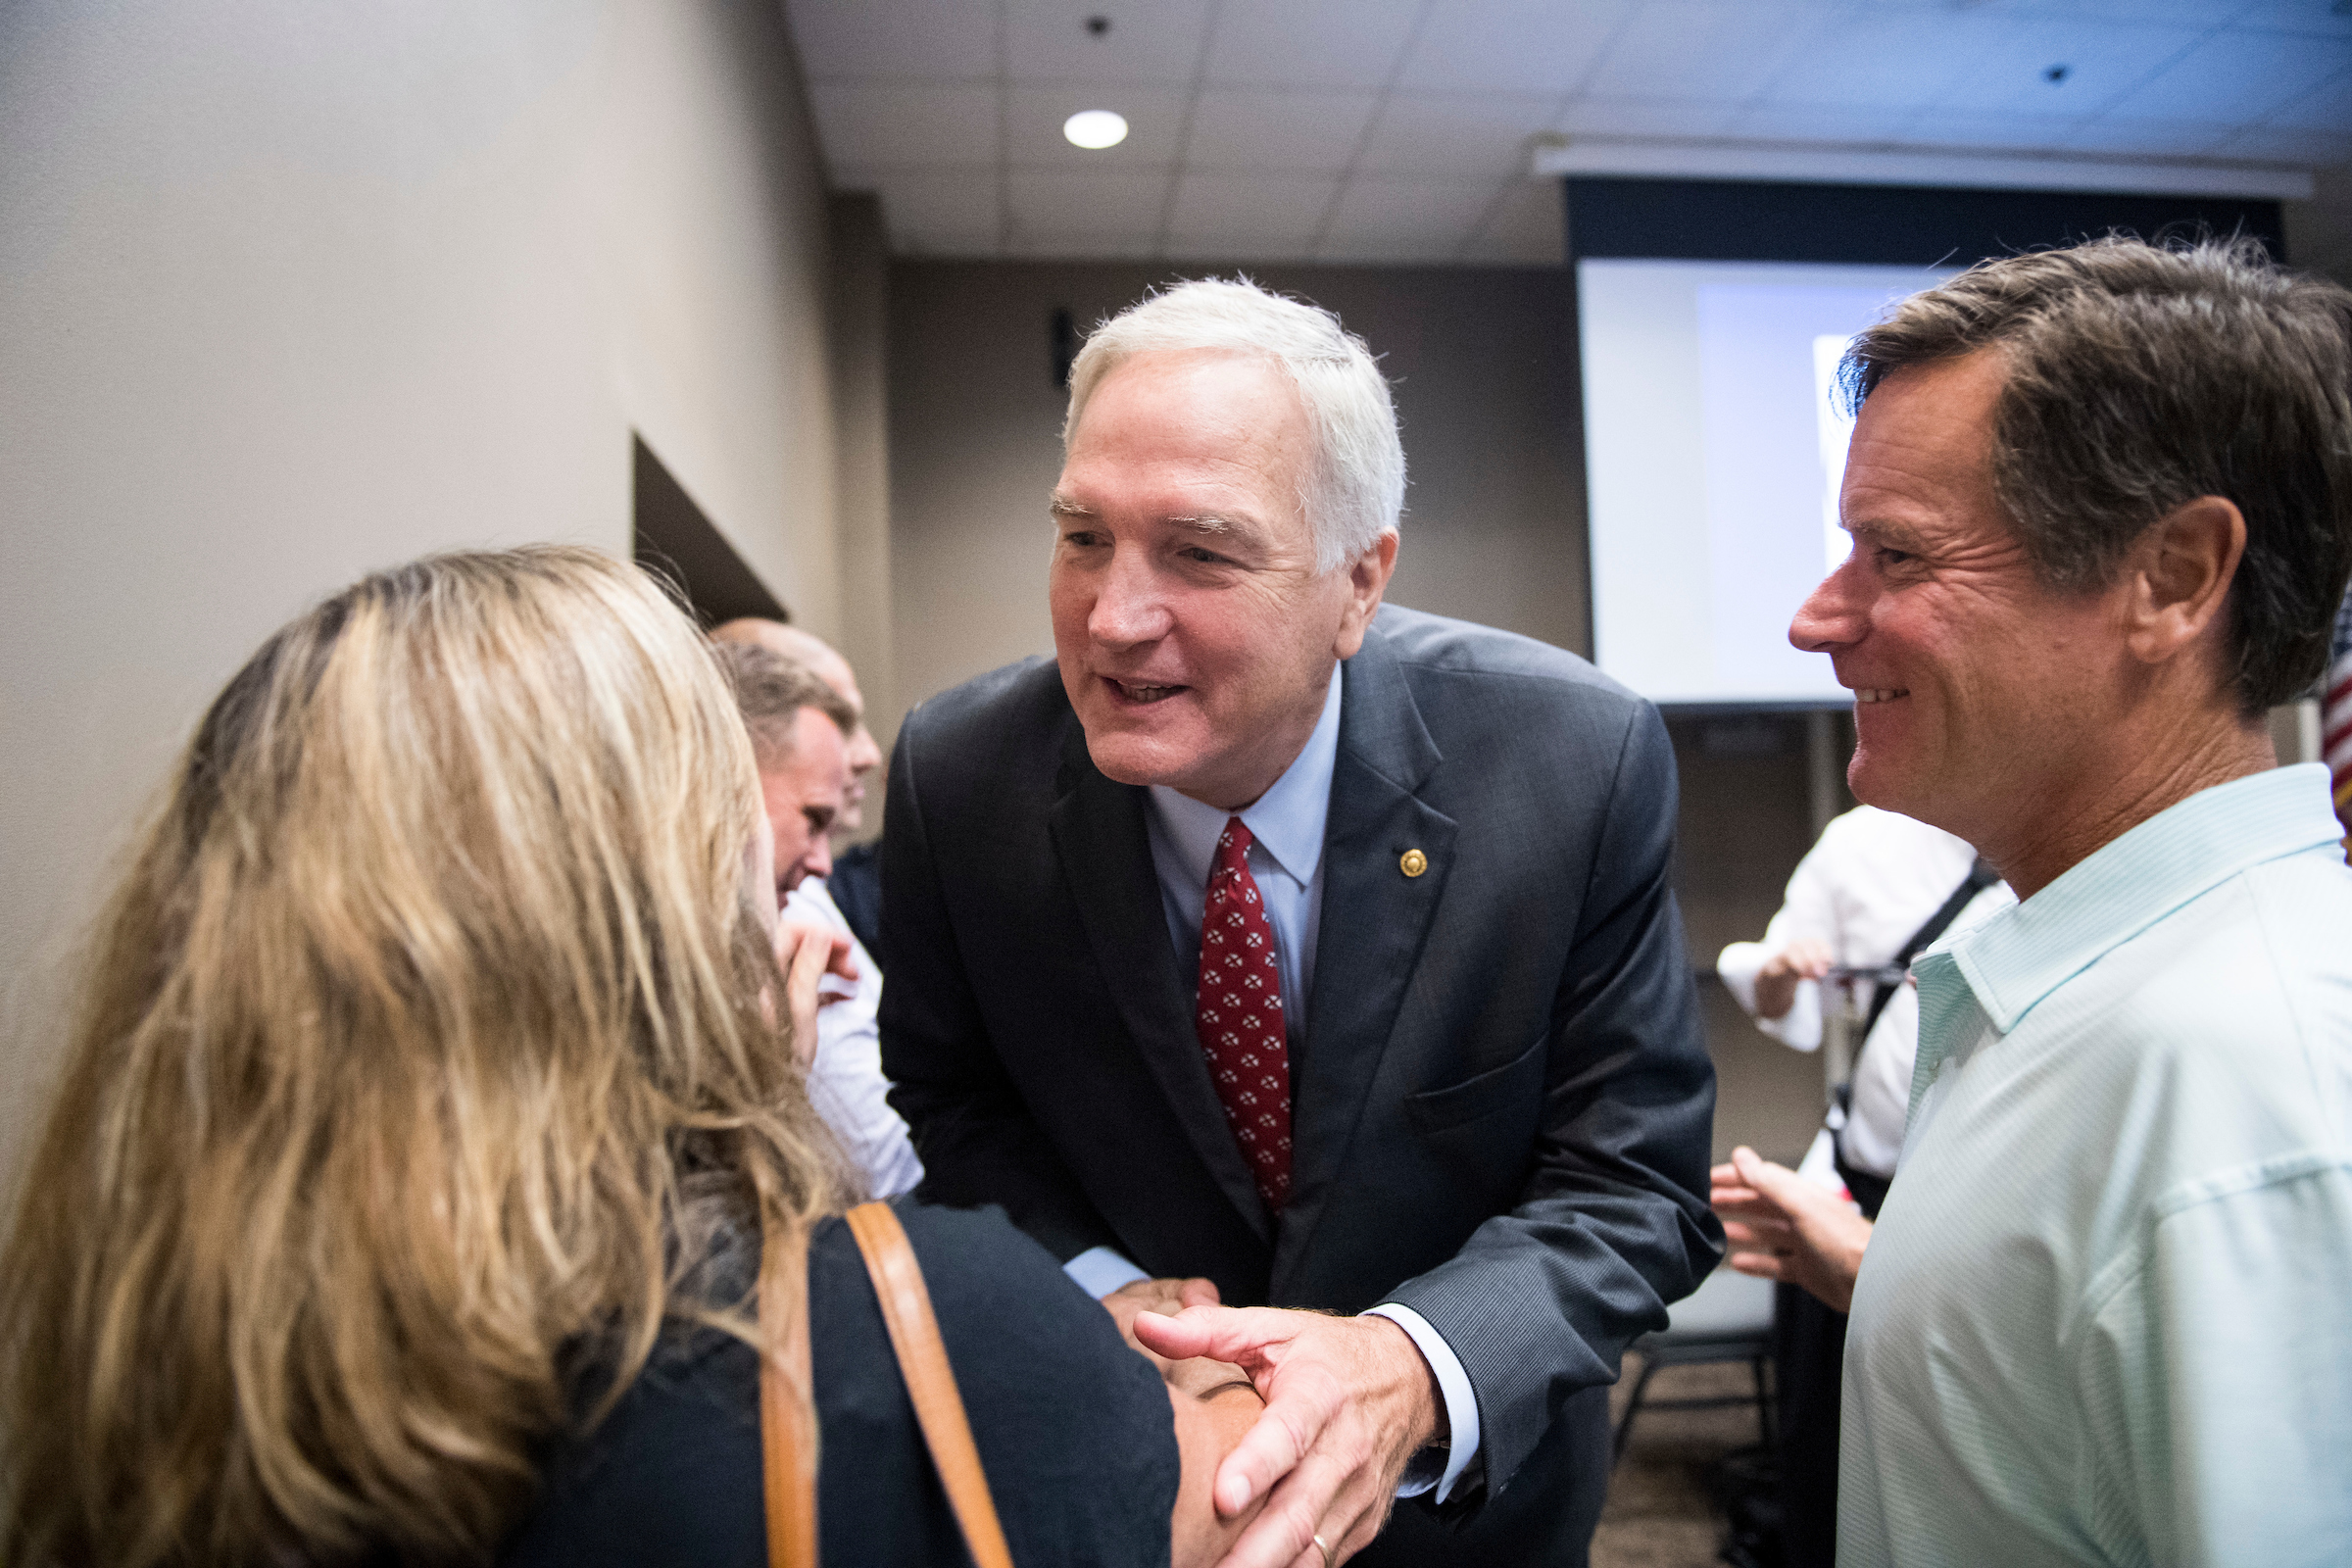 GOP candidate for U.S. Senate Sen. Luther Strange, R-Ala., speaks with attendees after the U.S. Senate candidate forum held by the Shelby County Republican Party in Pelham, Ala., on Friday, Aug. 4, 2017. Sen. Strange is running in the special election to fill the seat vacated by Attorney General Jeff Sessions. (Photo By Bill Clark/CQ Roll Call)